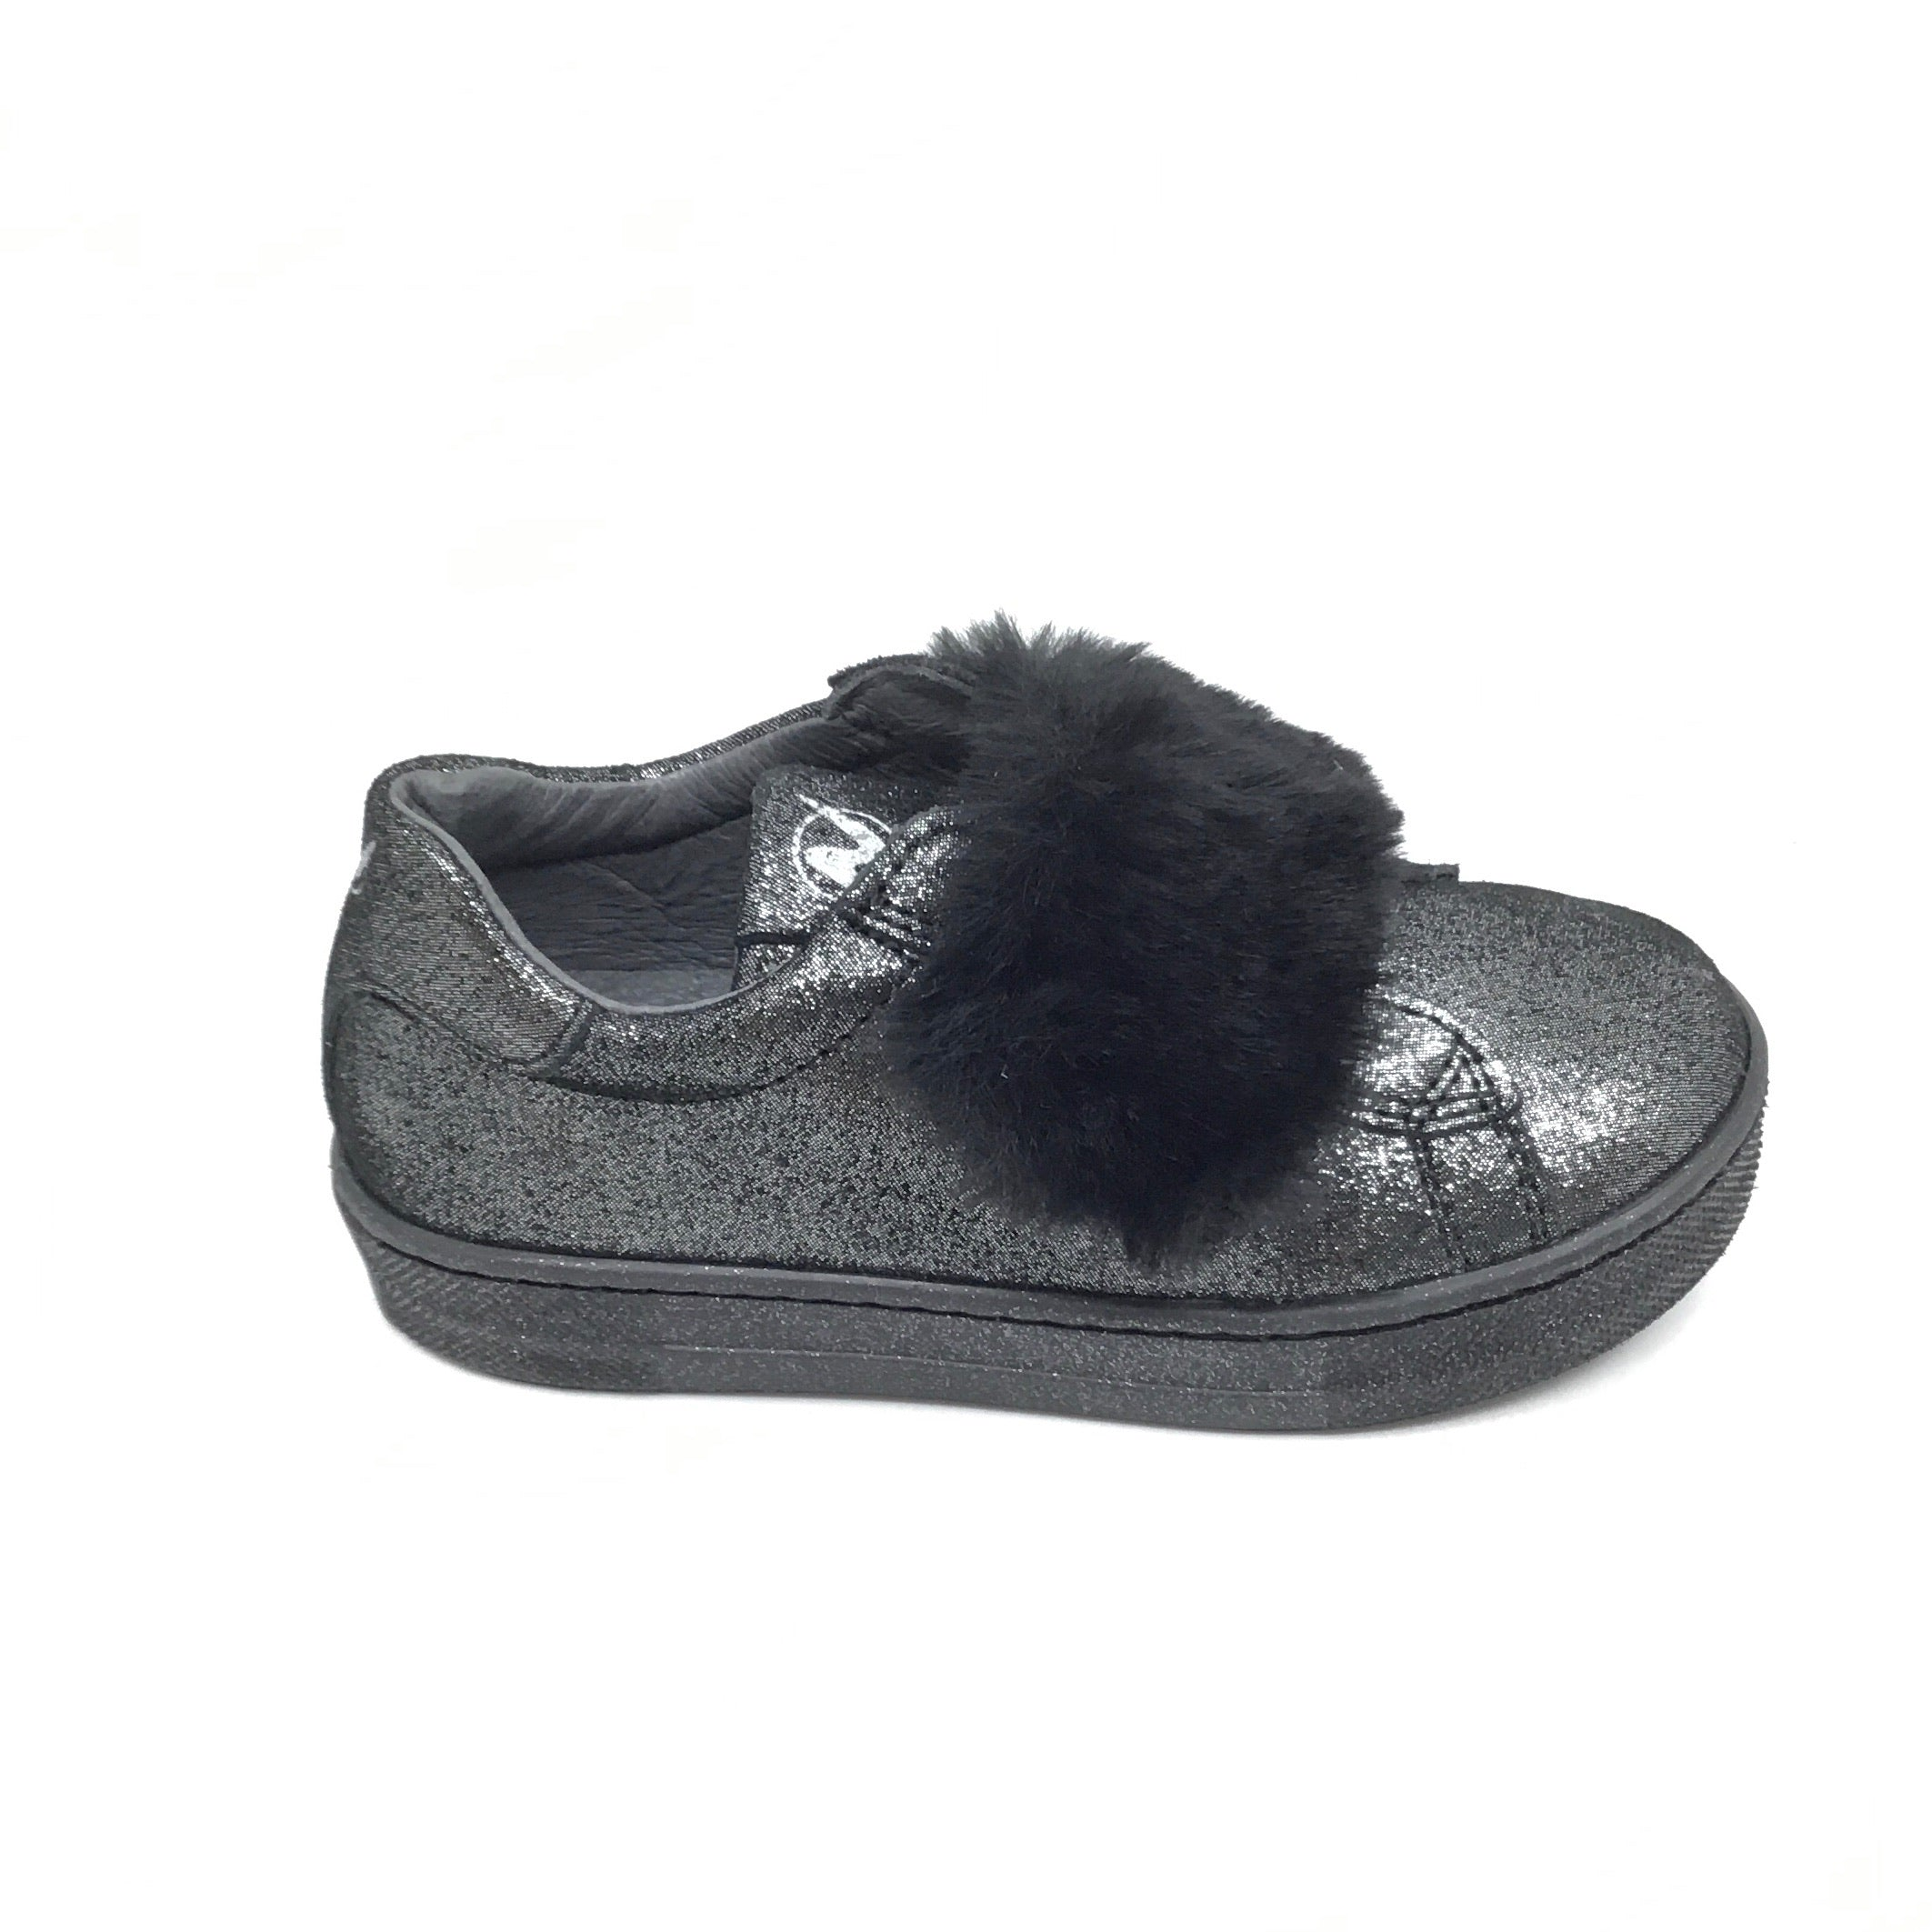 Naturino Black Sparkle Shoe with Fur Velcro